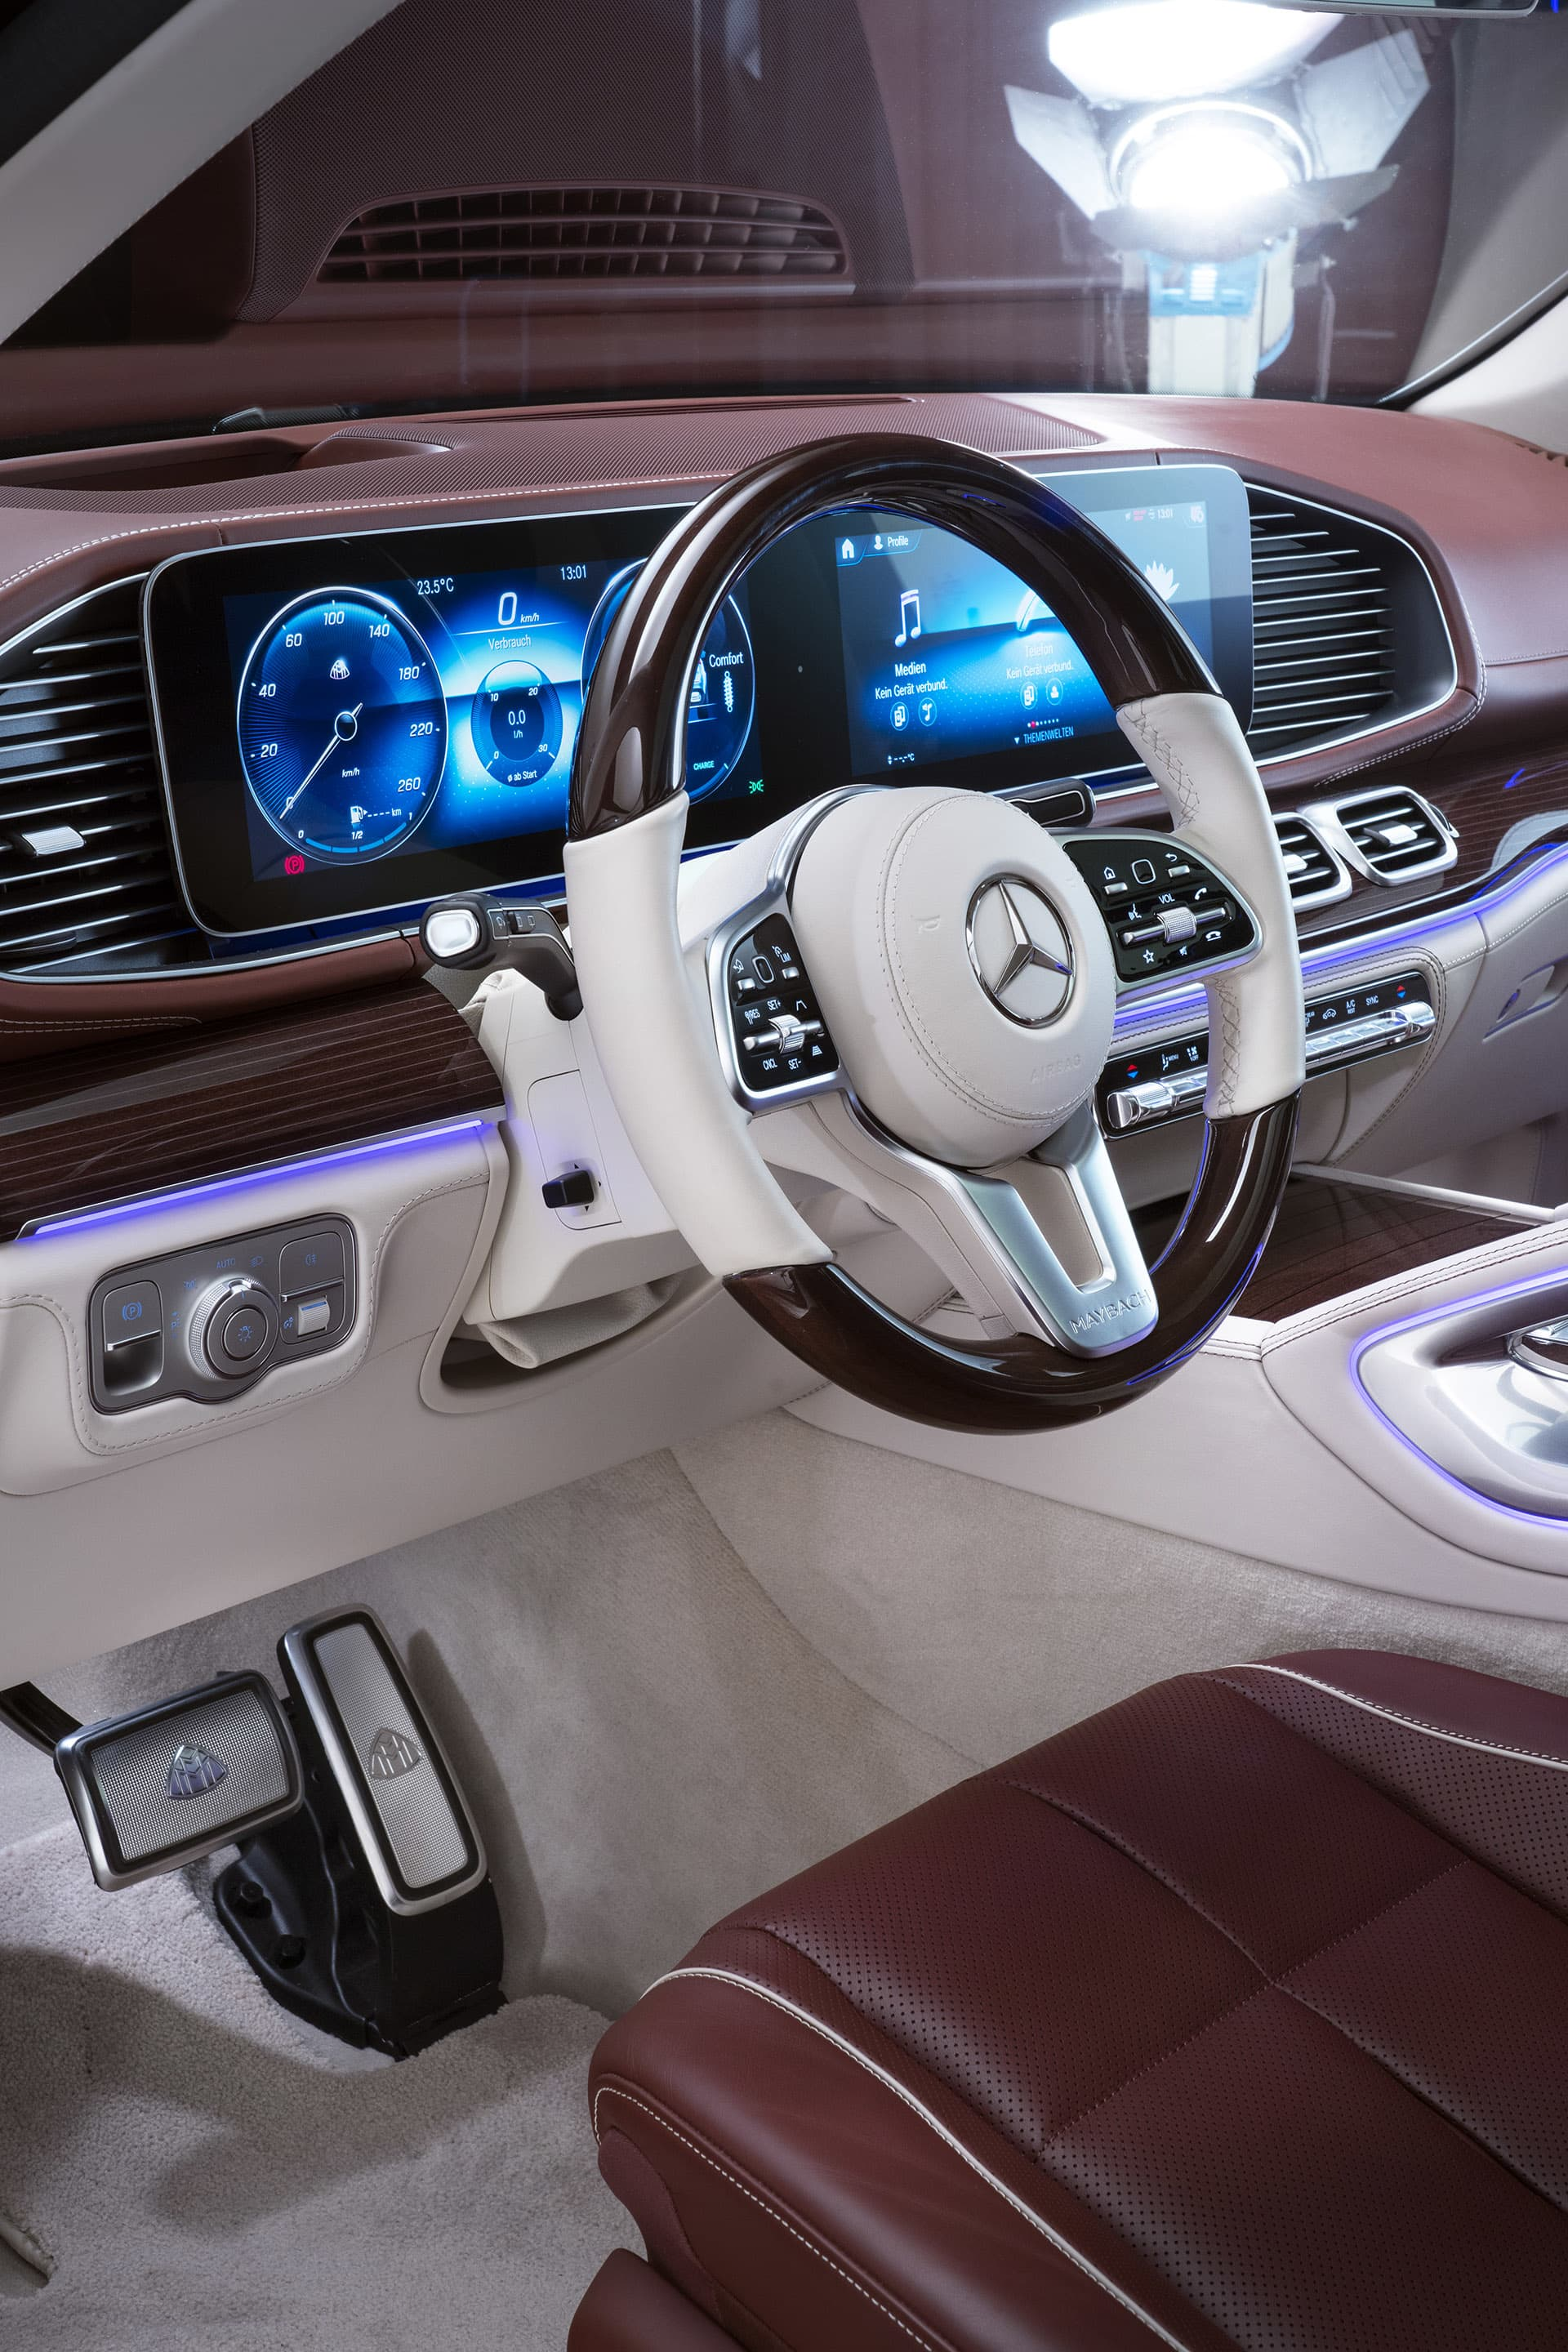 The driving environment in the Maybach GLS is dominated by the wide display in front of the steering wheel. This car is equipped with a unique driving program, specially designed for maximum comfort in the rear seat.